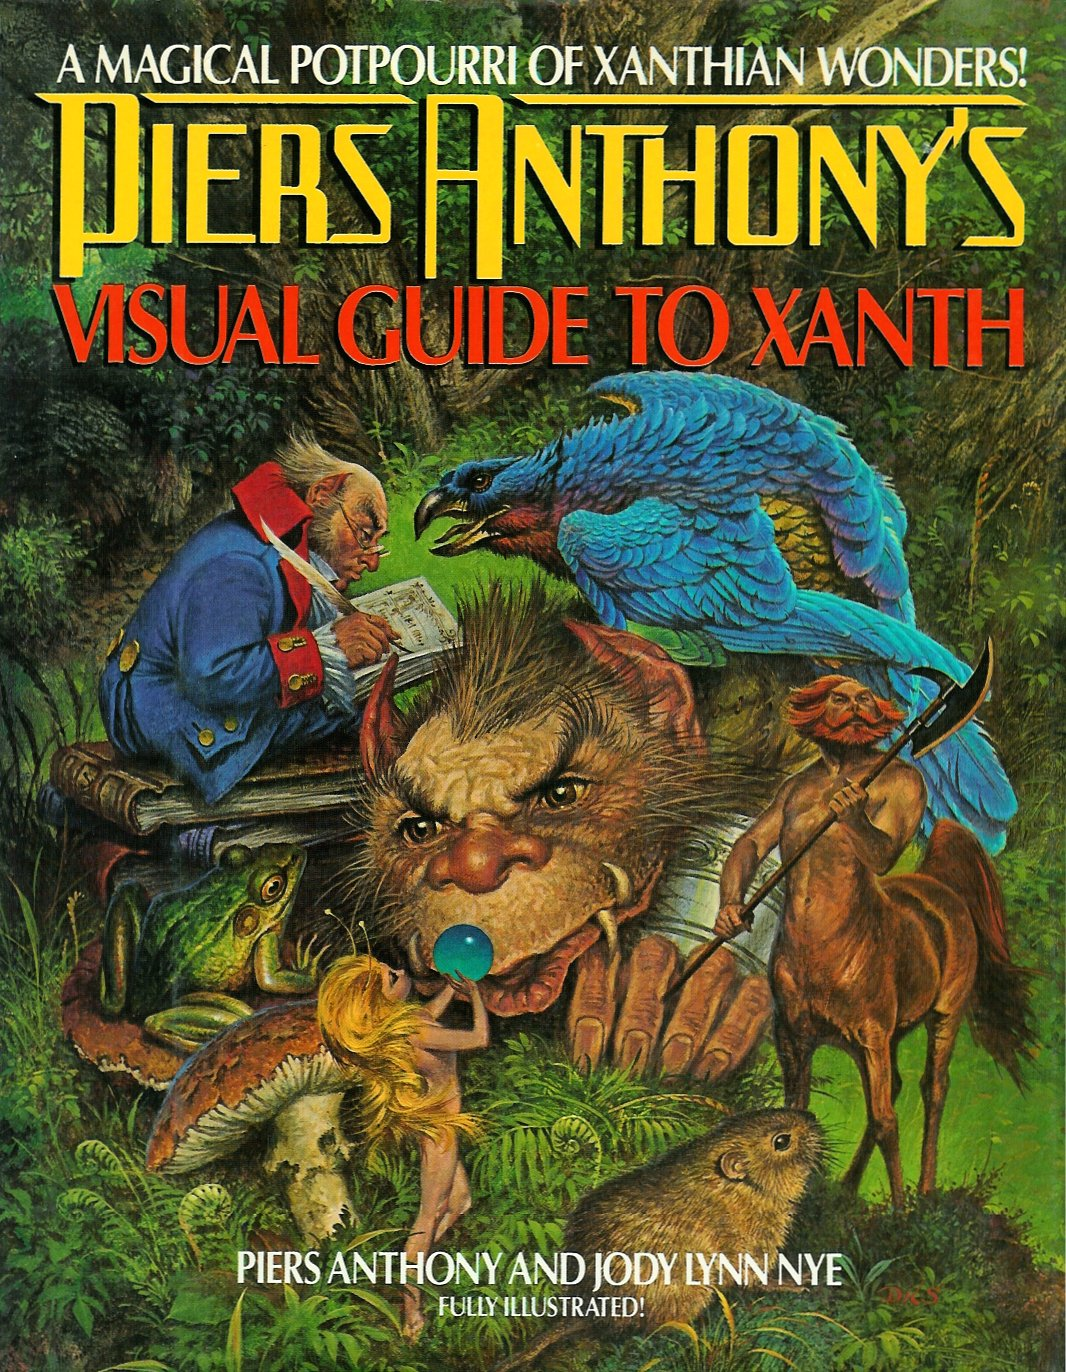 Piers Anthony's Visual Guide to Xanth